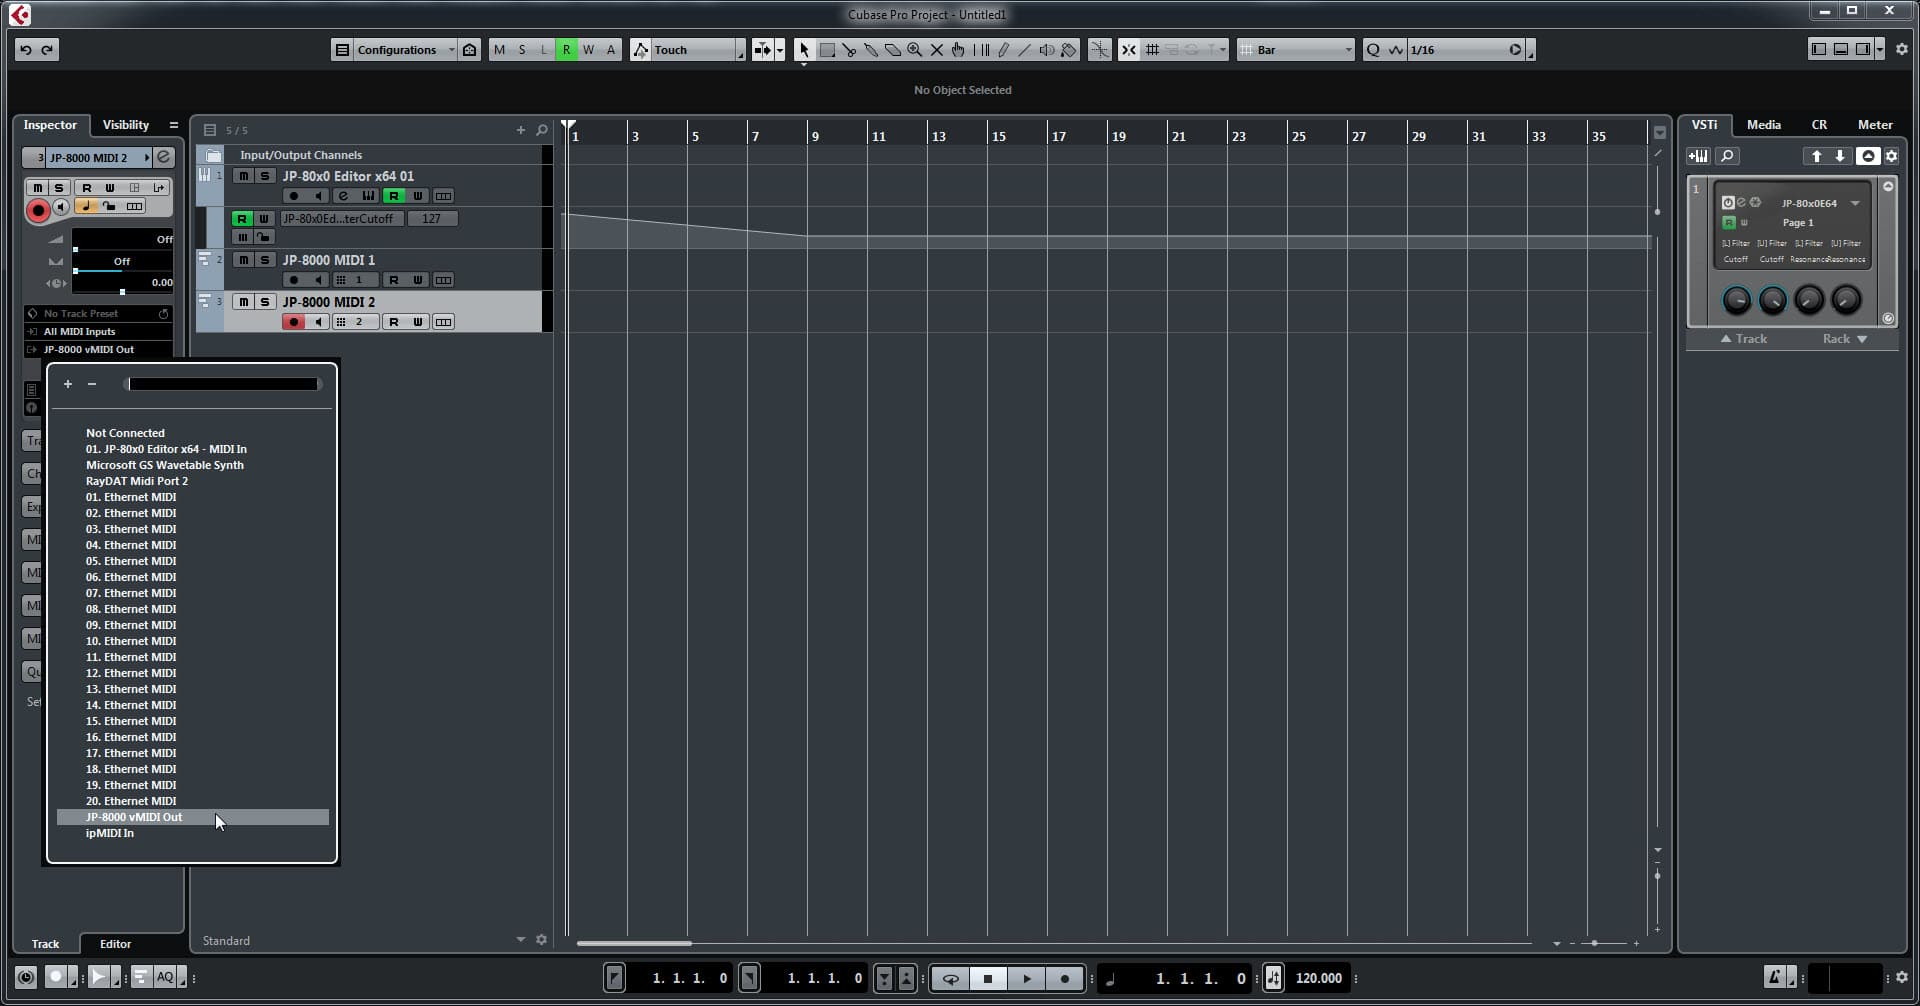 Steinberg Cubase Config - Assign MIDI Ports Appropriately